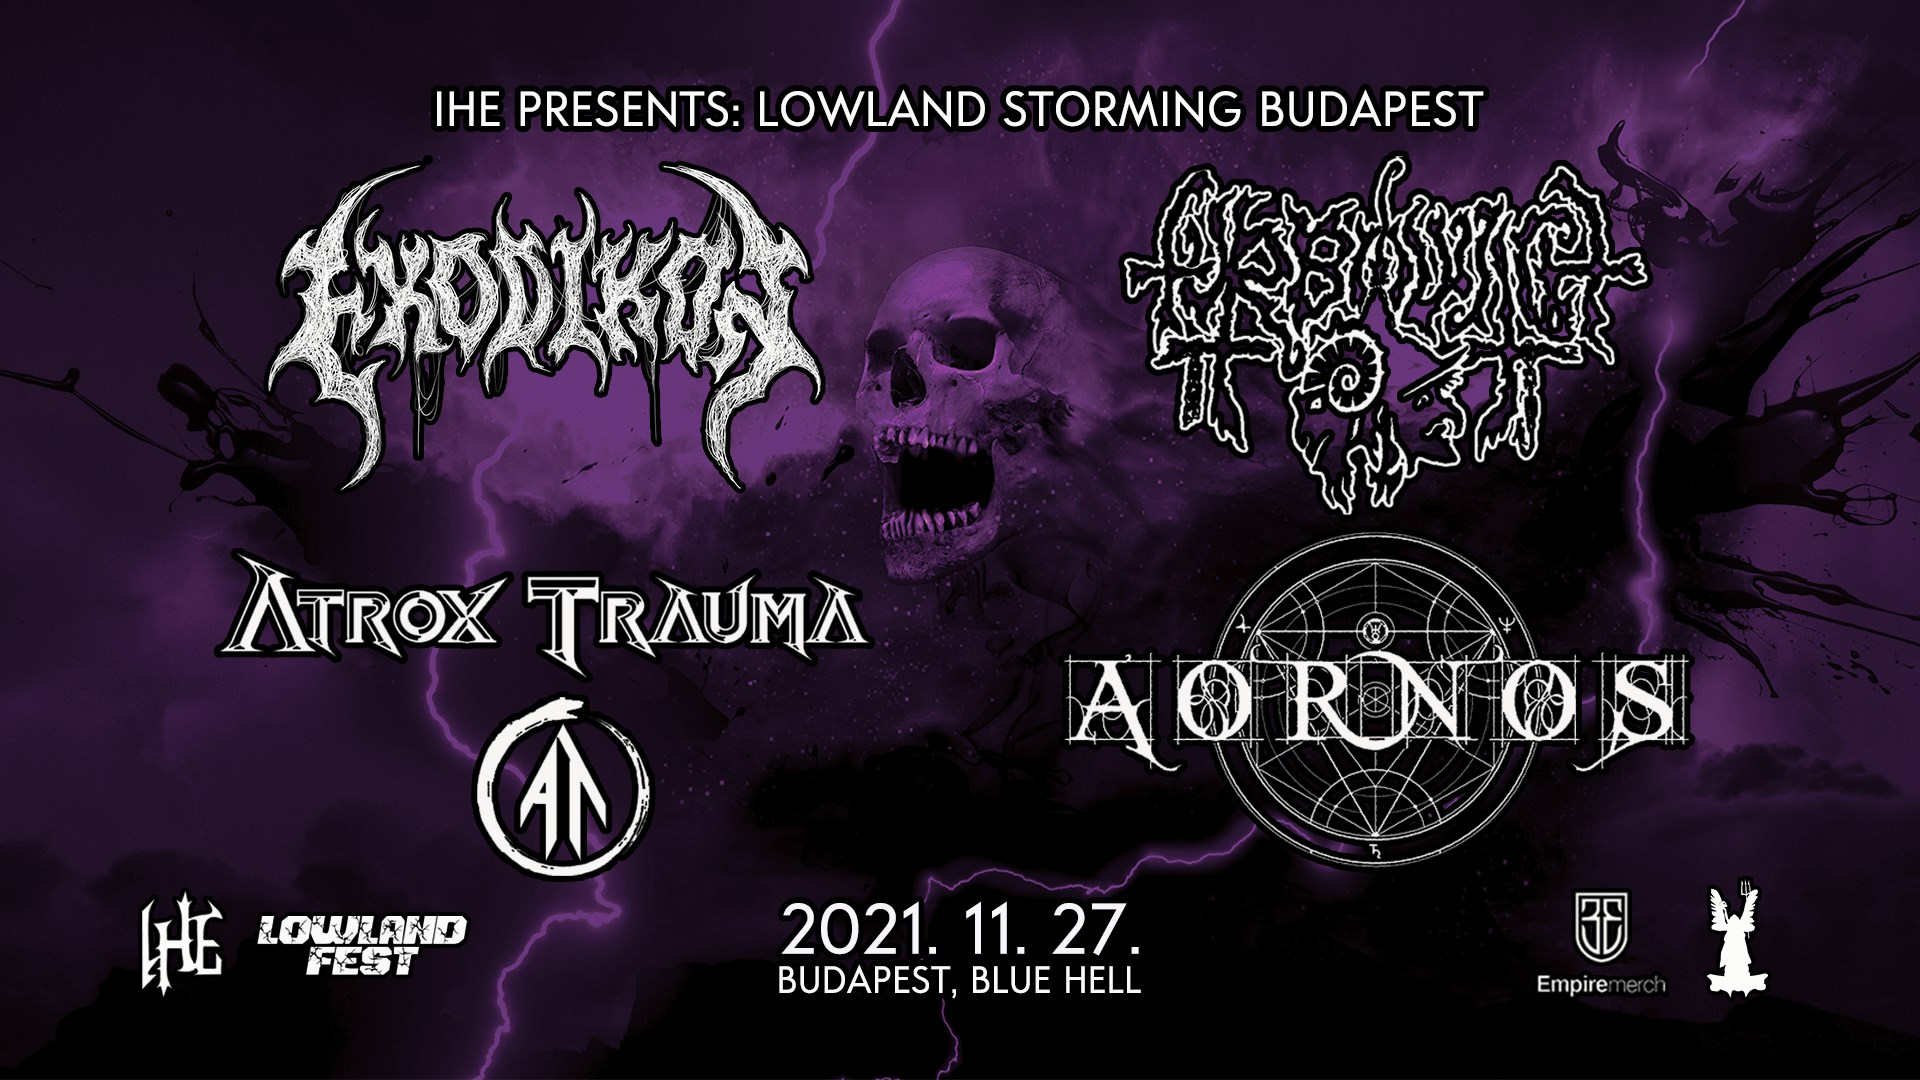 Lowland Storming Budapest